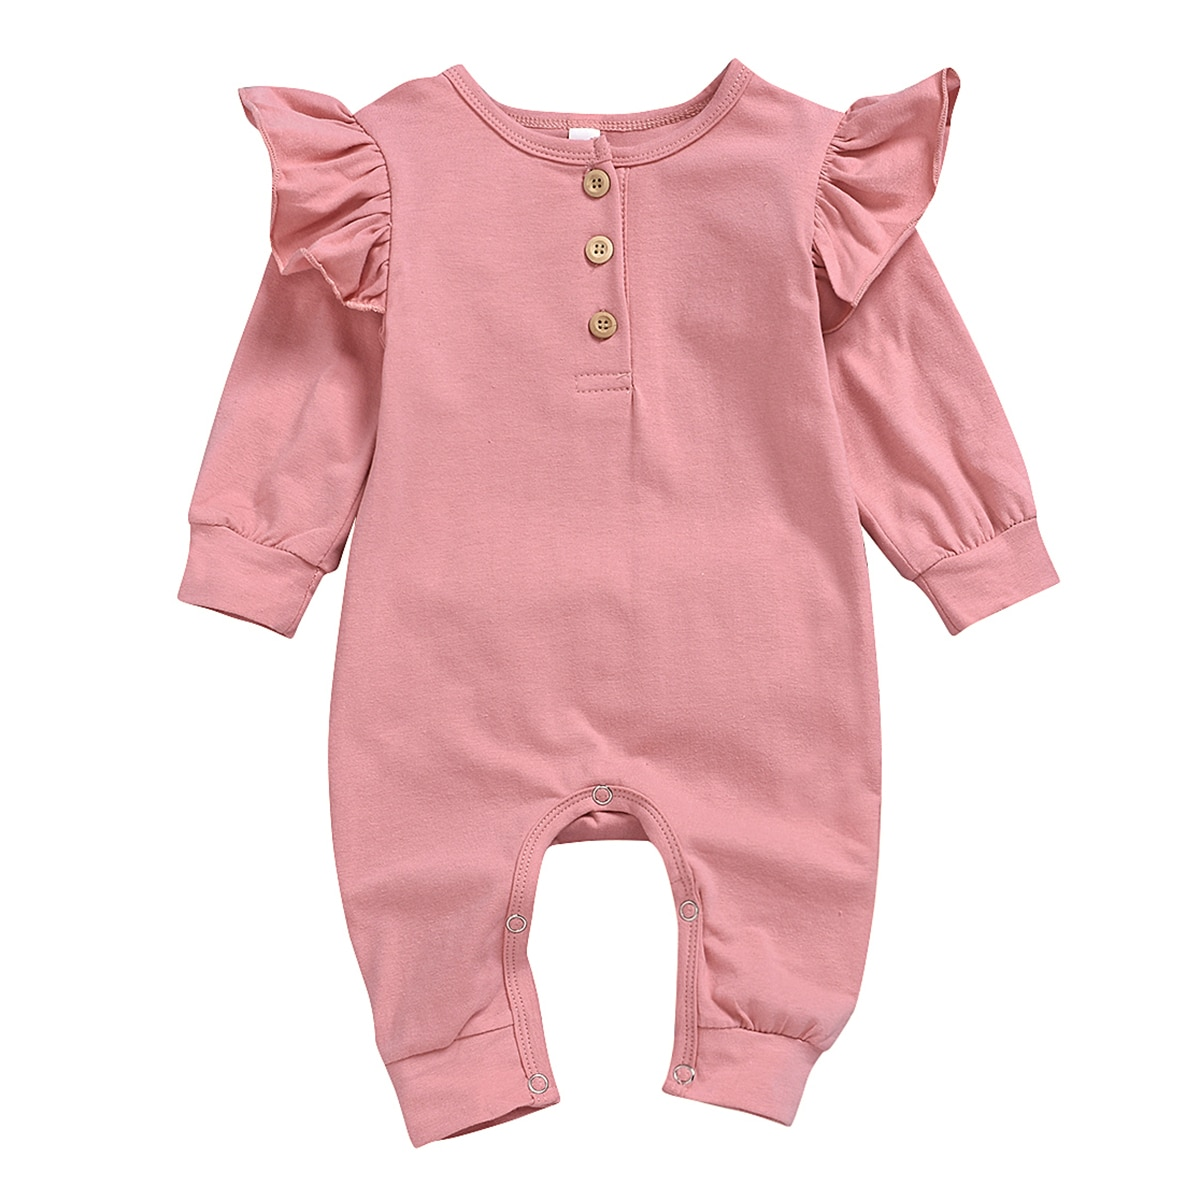 Puseky New Baby Girl Button Ruffled Romper Jumpsuit Playsuit Outfit Autumn Clothes 3M-24M